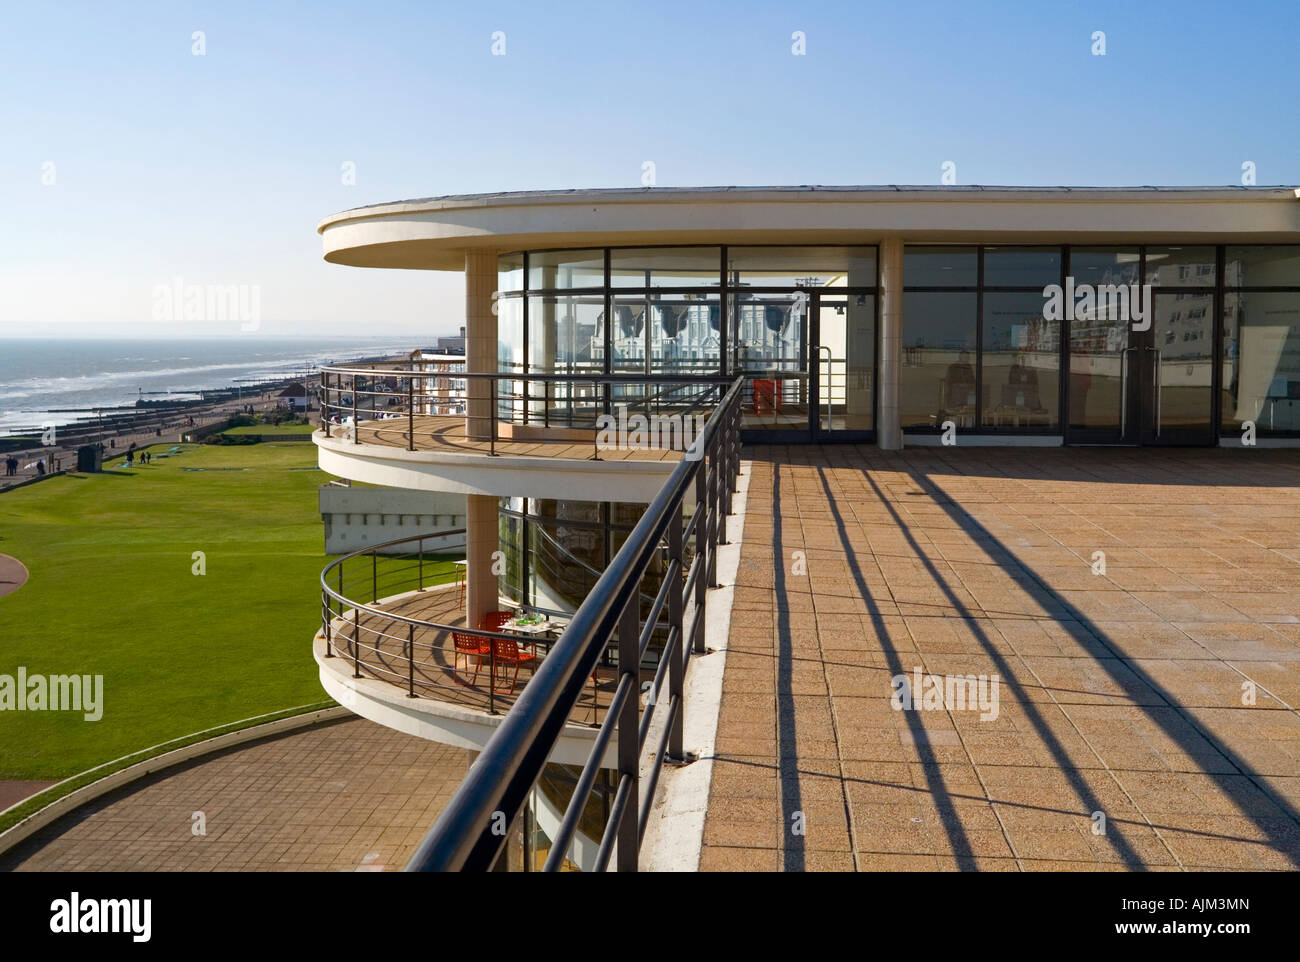 Exterior of the De La Warr Pavilion in Bexhill on Sea East Sussex UK designed by Erich Mendelsohn and Serge Chermayeff Stock Photo